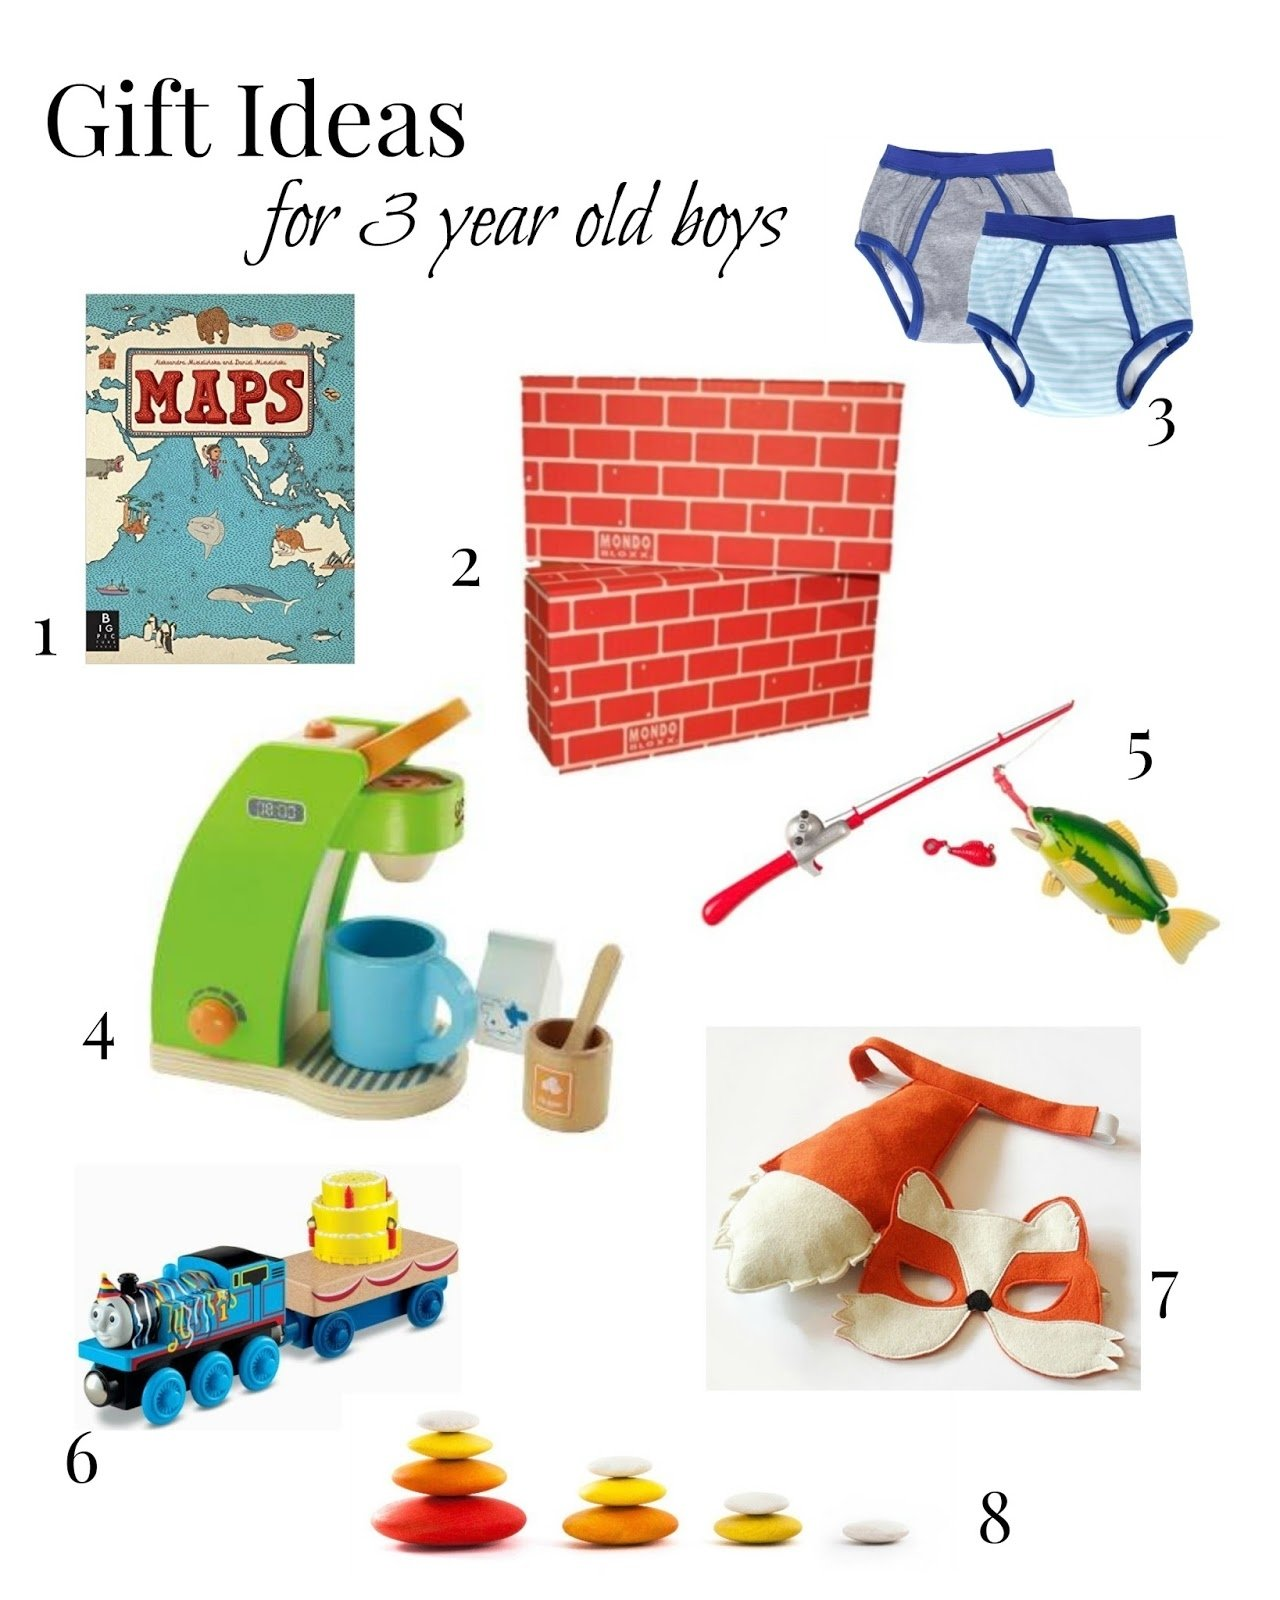 10 Fabulous Gift Ideas For A 3 Year Old pink to green friday favorites gift ideas for 3 year old boys 2 2020